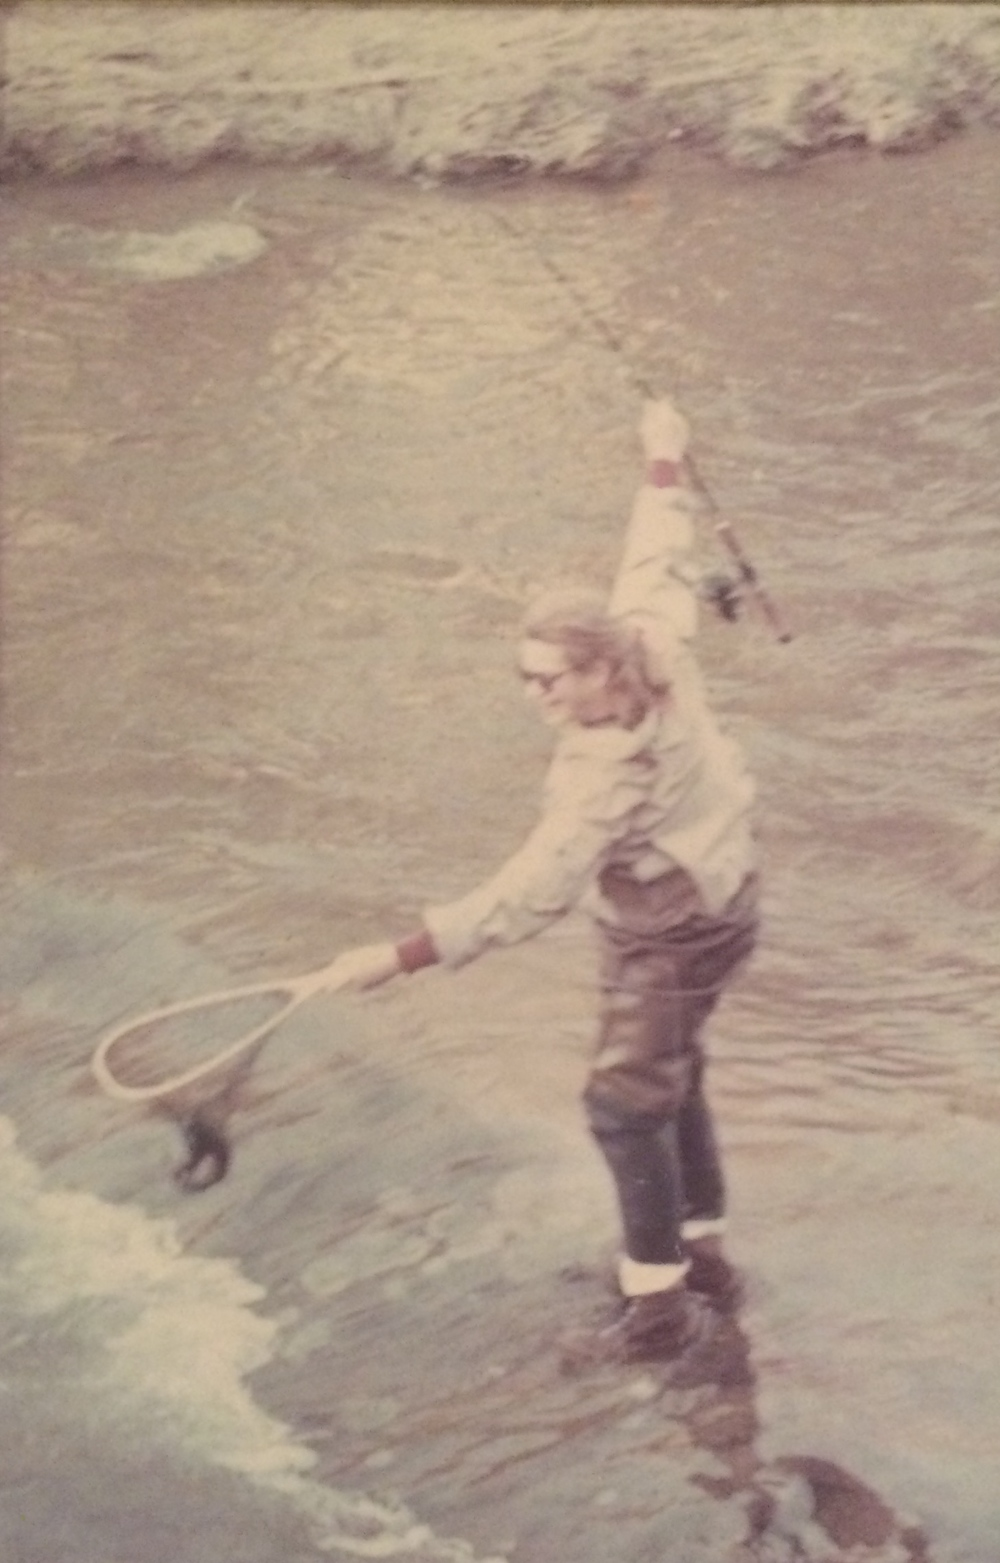 My Mom, back in the day.